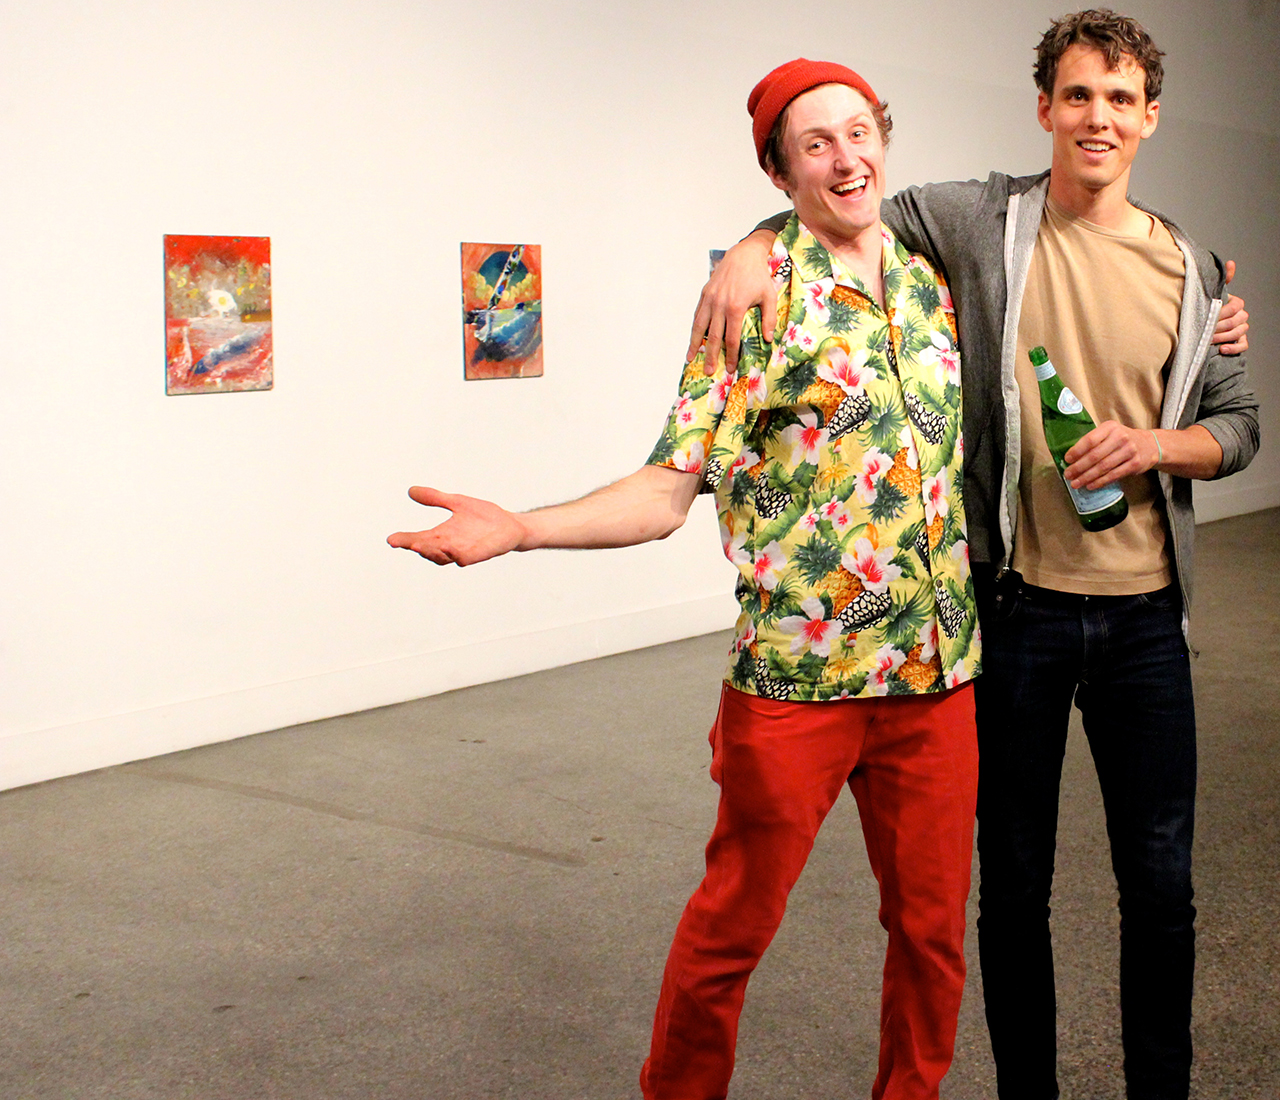 Henry Crissman and Hamilton Poe at the opening of 'Self-Titled 2' at Trinosophes (click to enlarge)